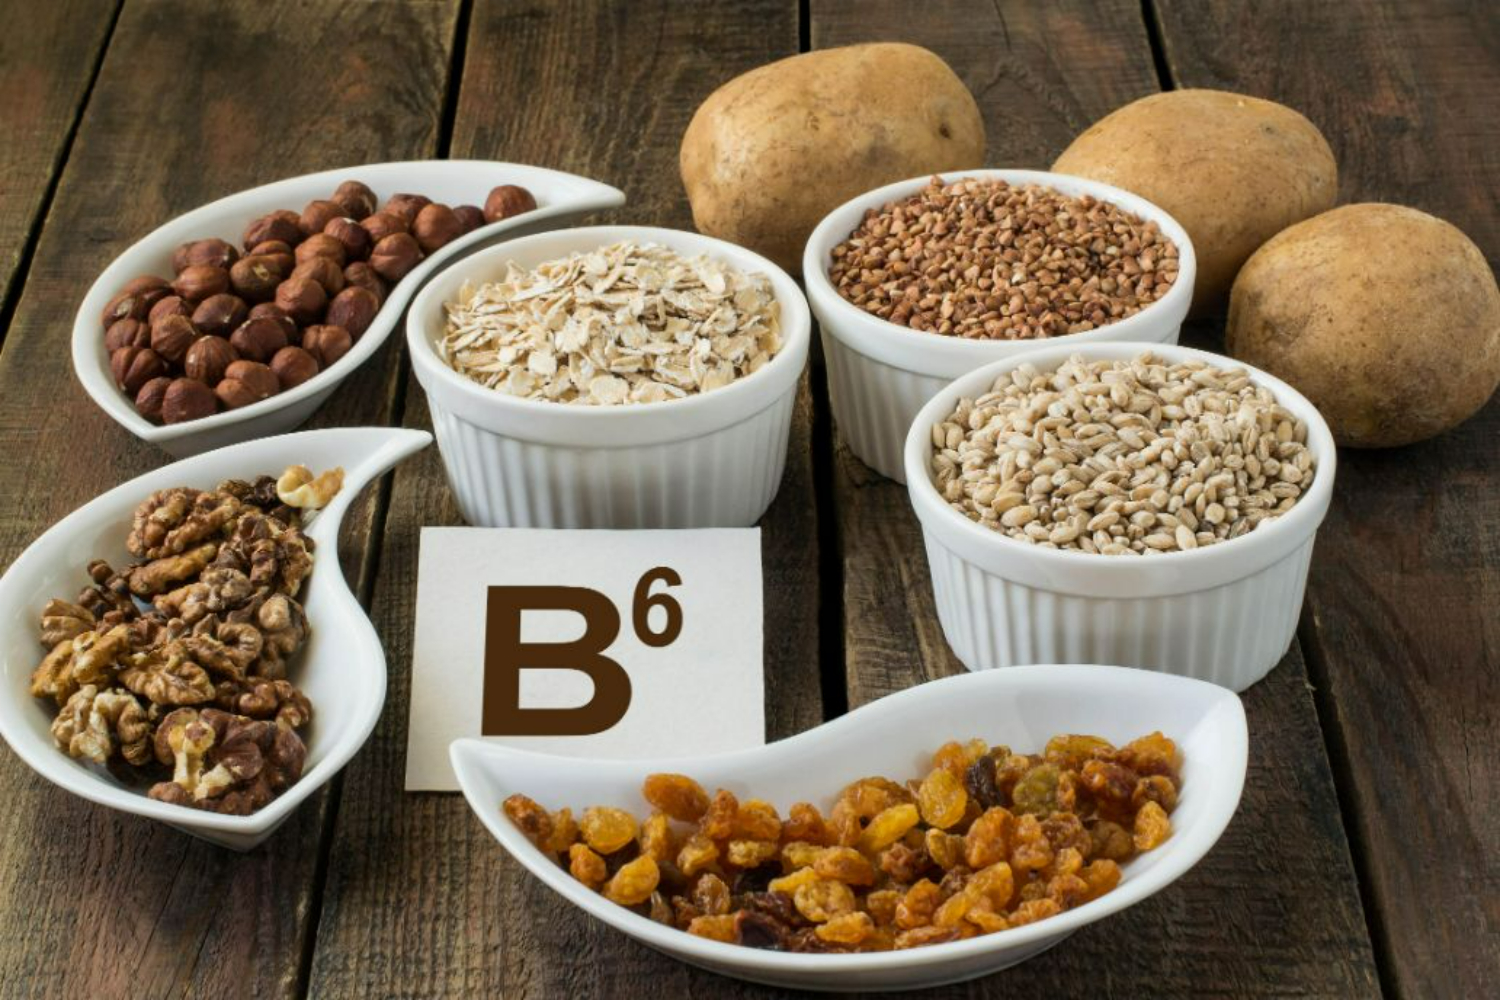 B6 for weight loss